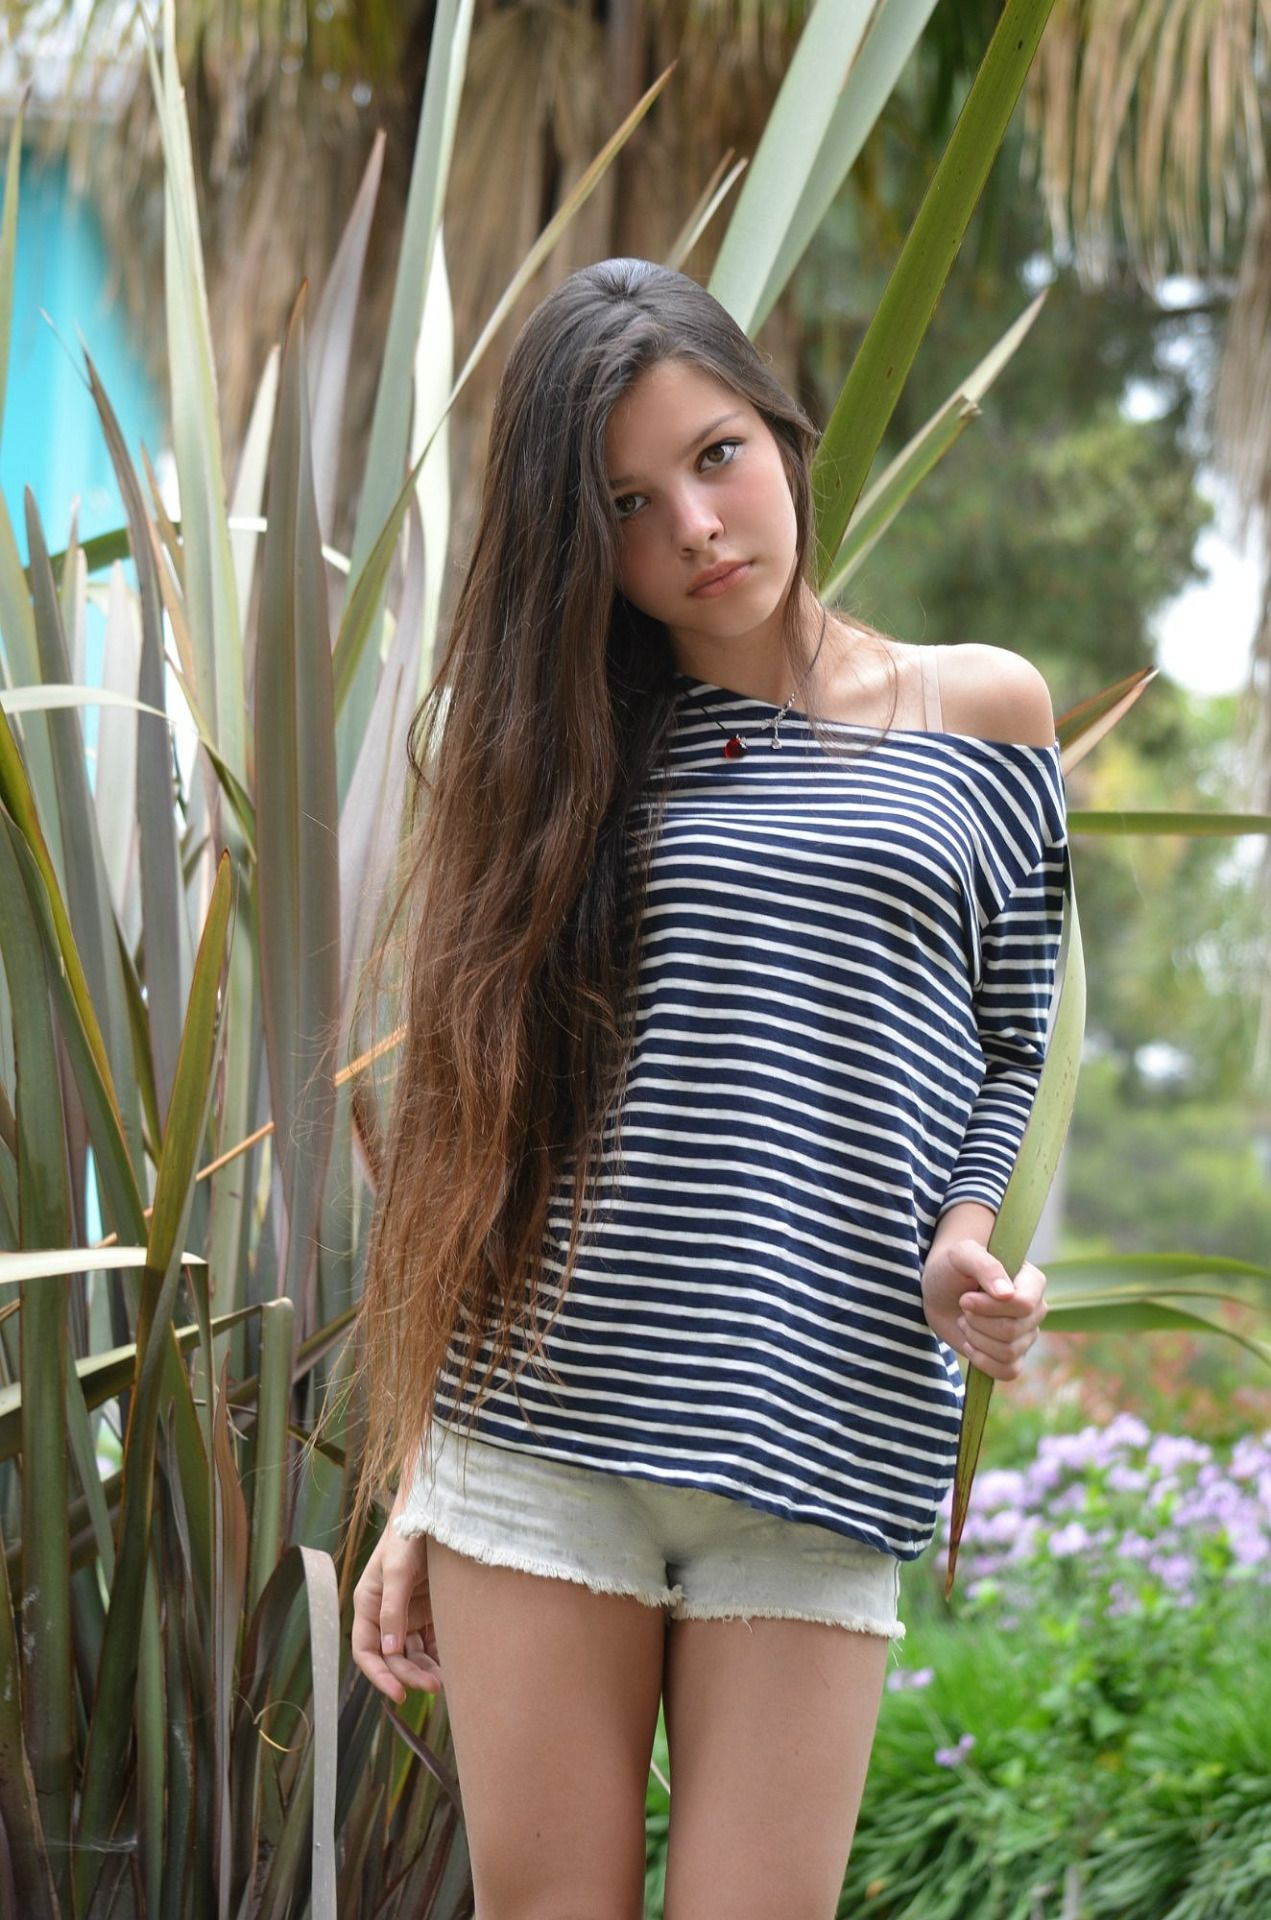 Pin by Perfect Girls on Beautiful young teen girls | Pinterest ...